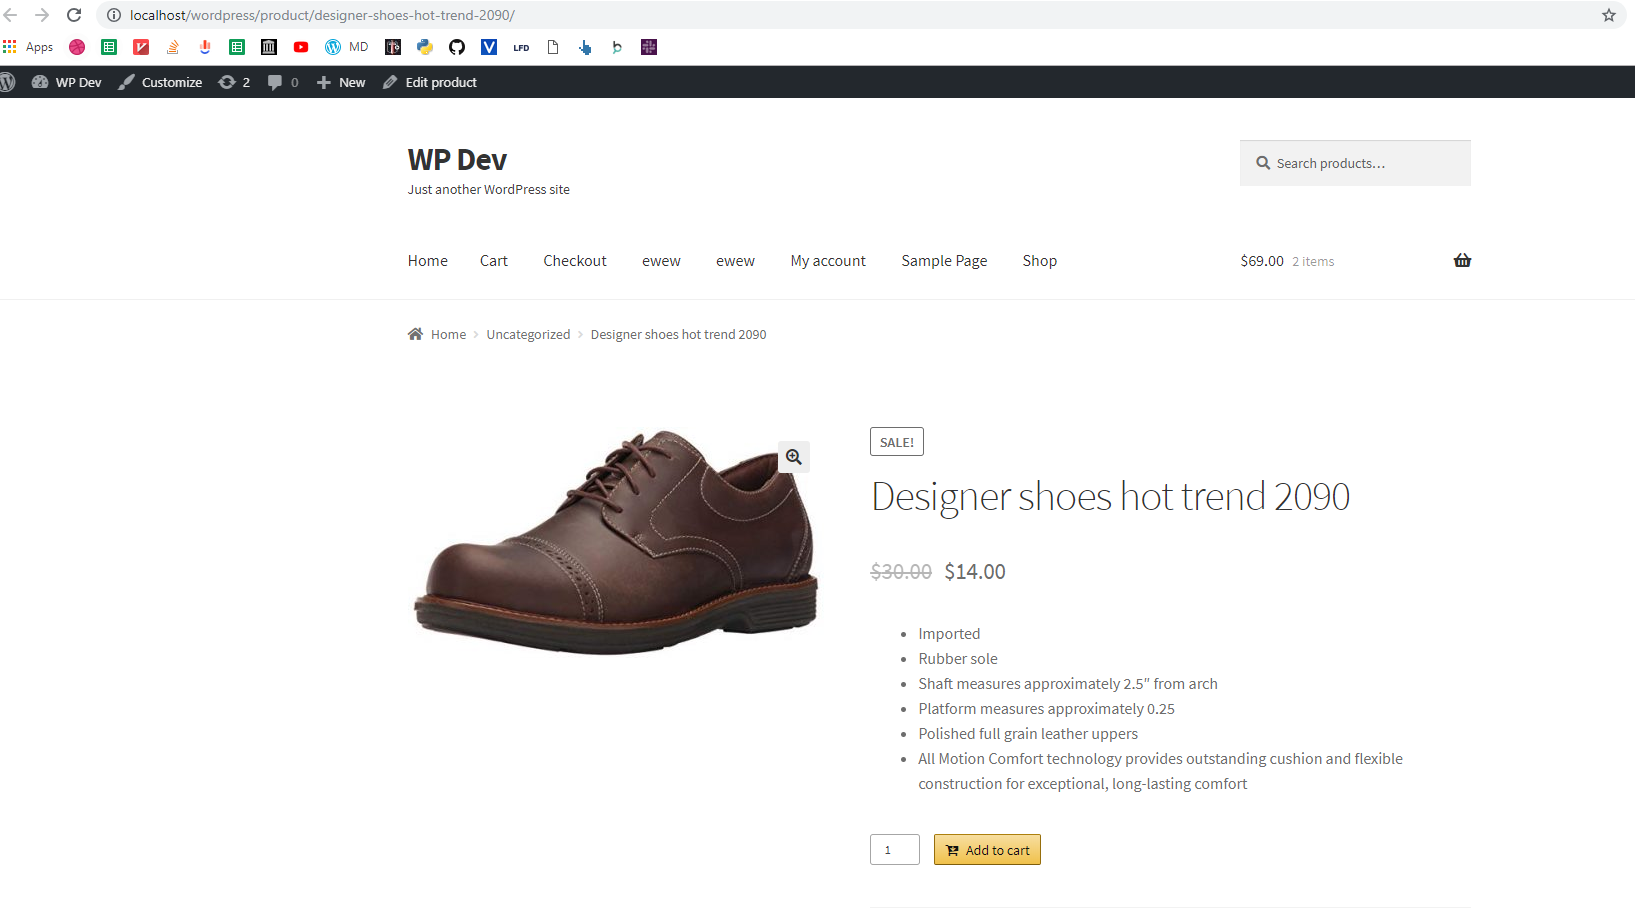 The Ultimate Guide To Adding Products To Cart Using Ajax In